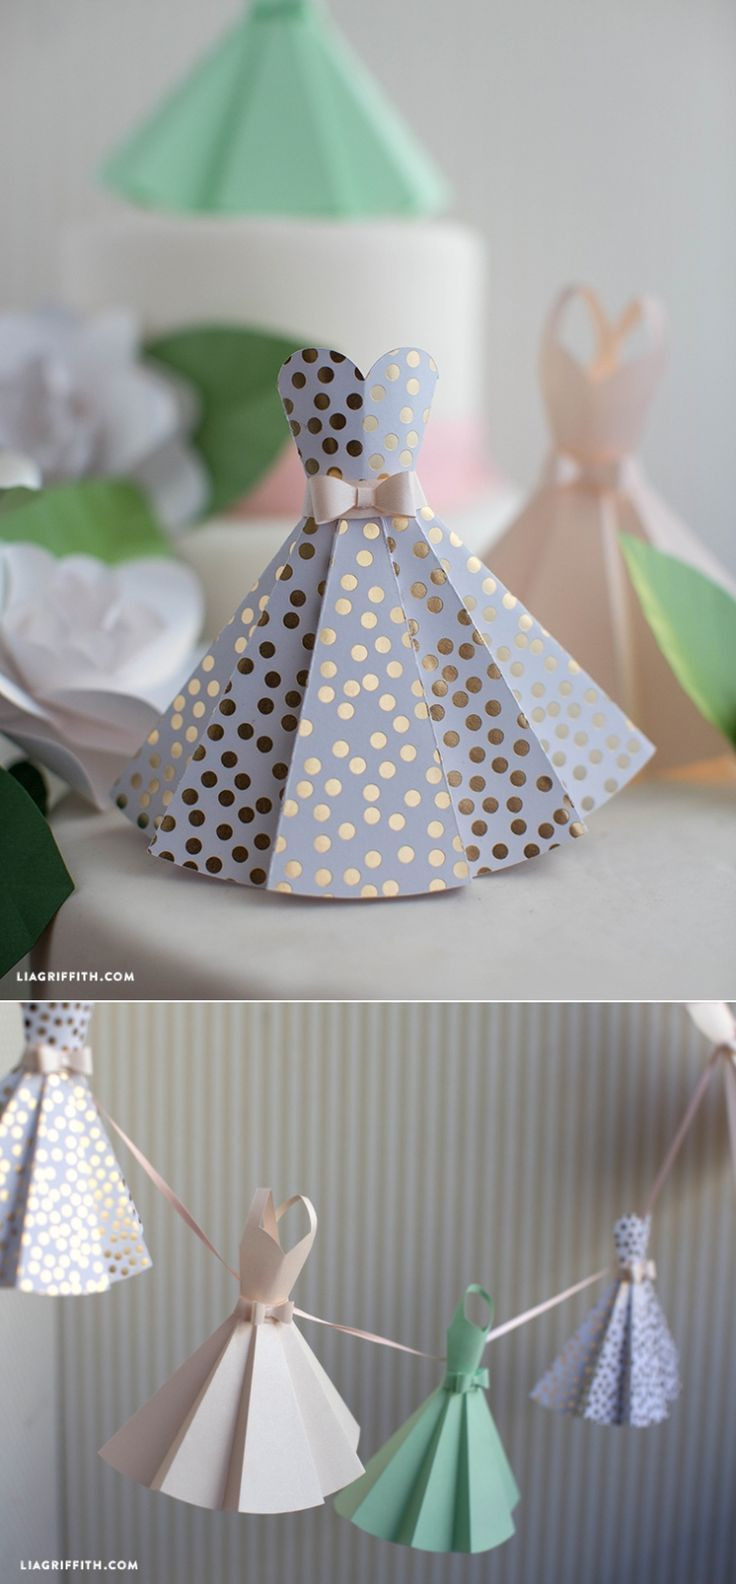 Best ideas about DIY Wedding Crafts . Save or Pin Paper Dress DIY Wedding Decorations Make Paper Now.